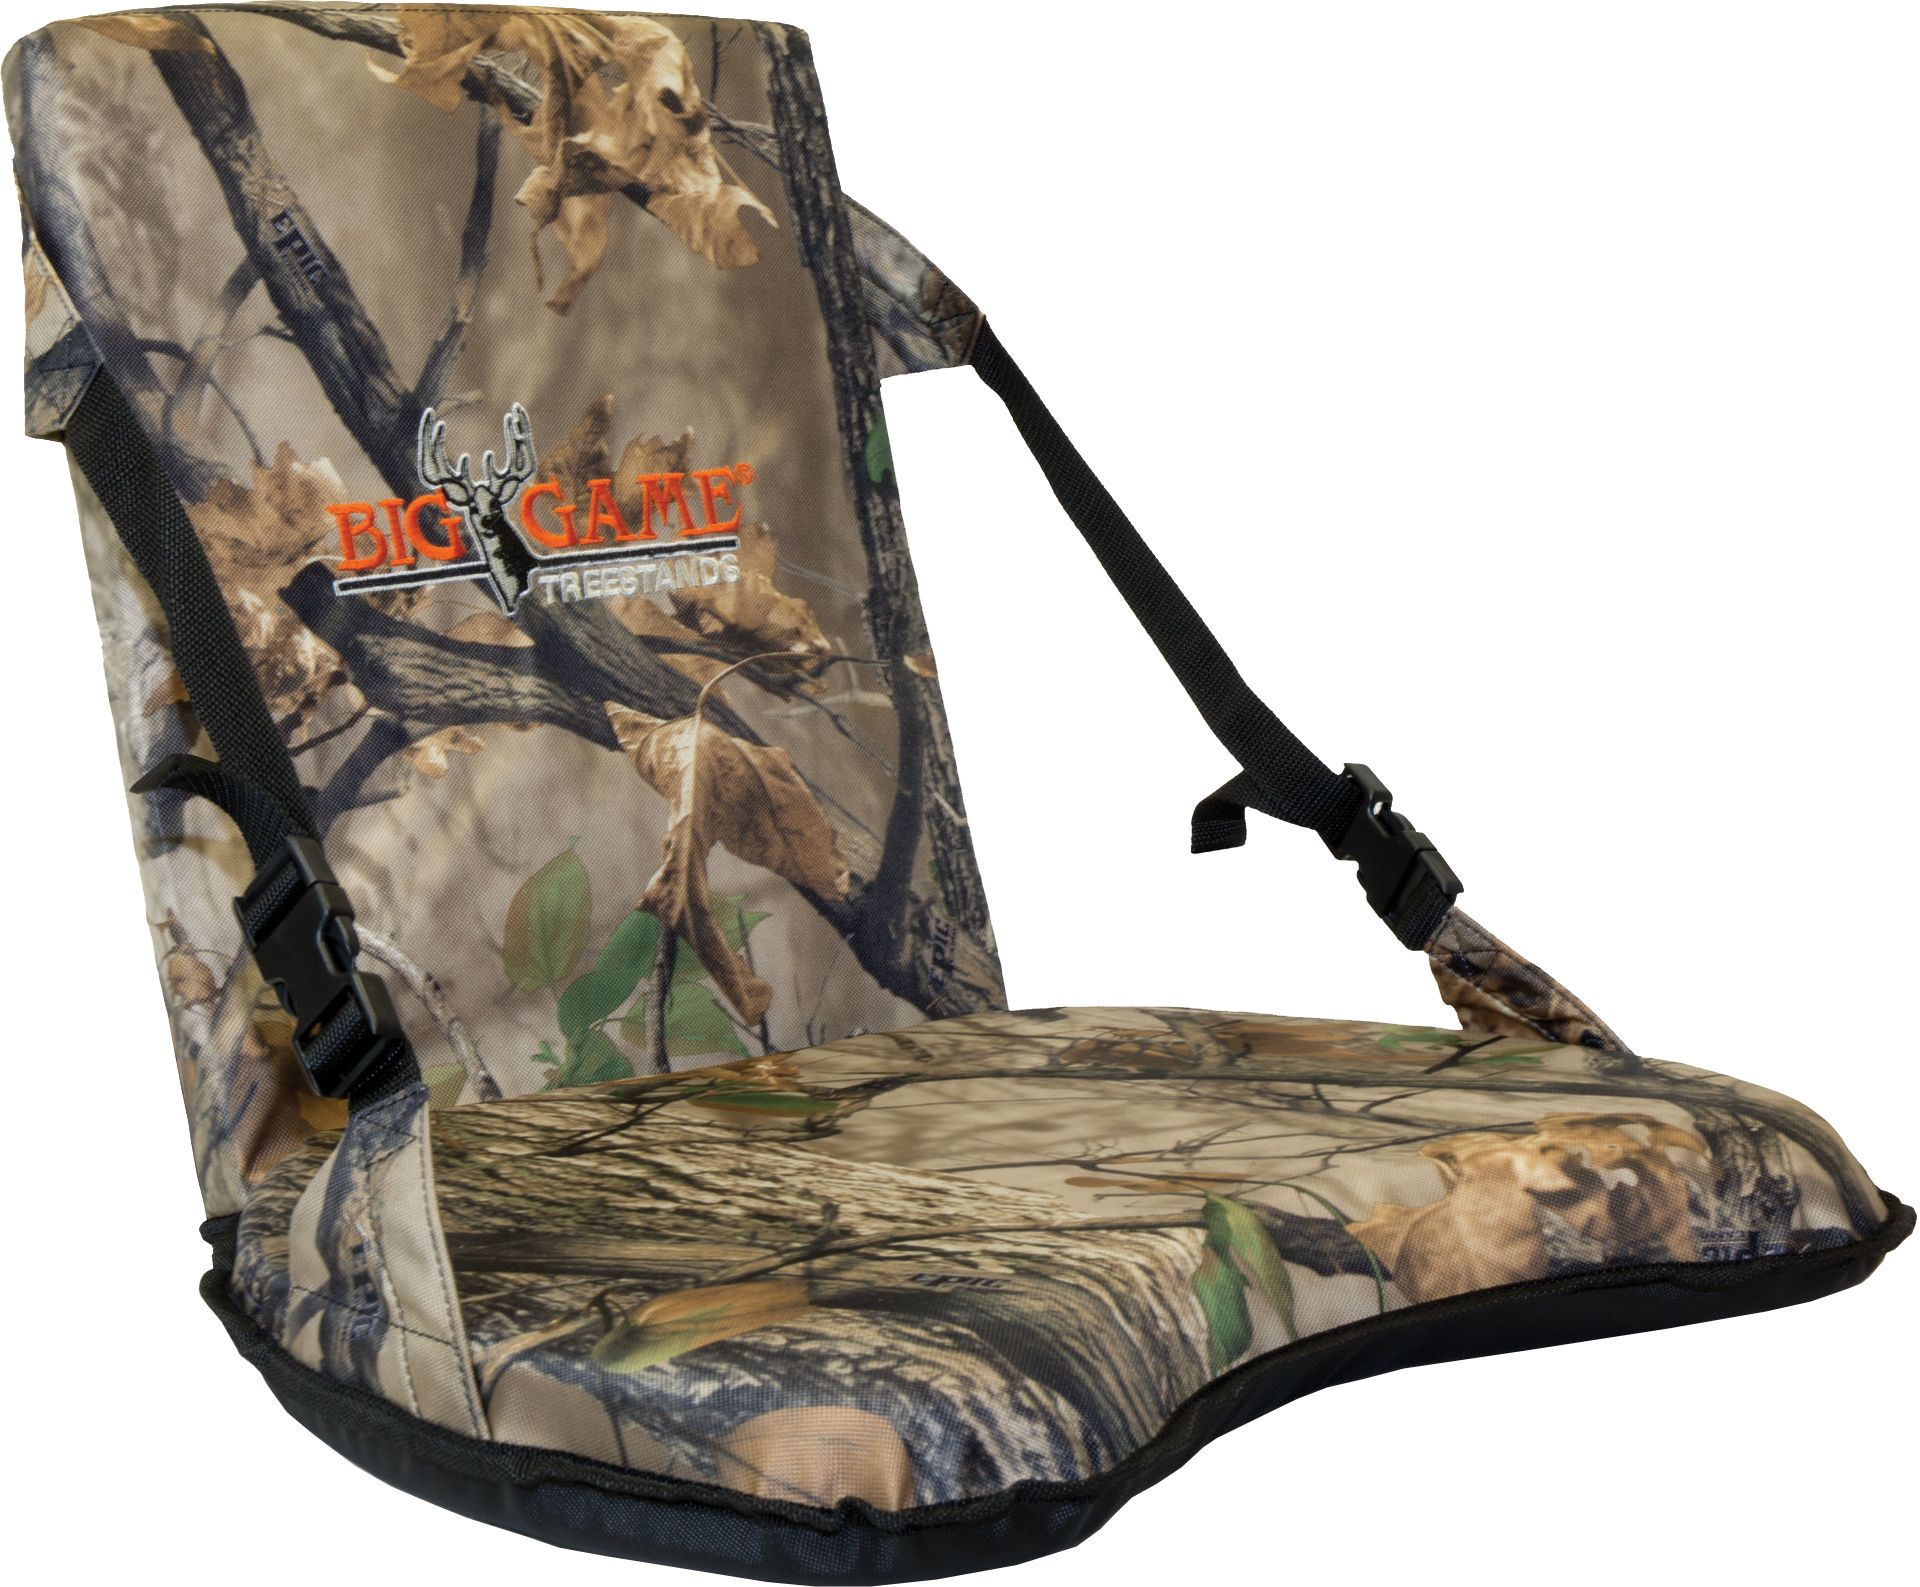 Product Image · Big Game Complete Seat  sc 1 st  DICKu0027S Sporting Goods & Hunting Chairs | DICKu0027S Sporting Goods islam-shia.org